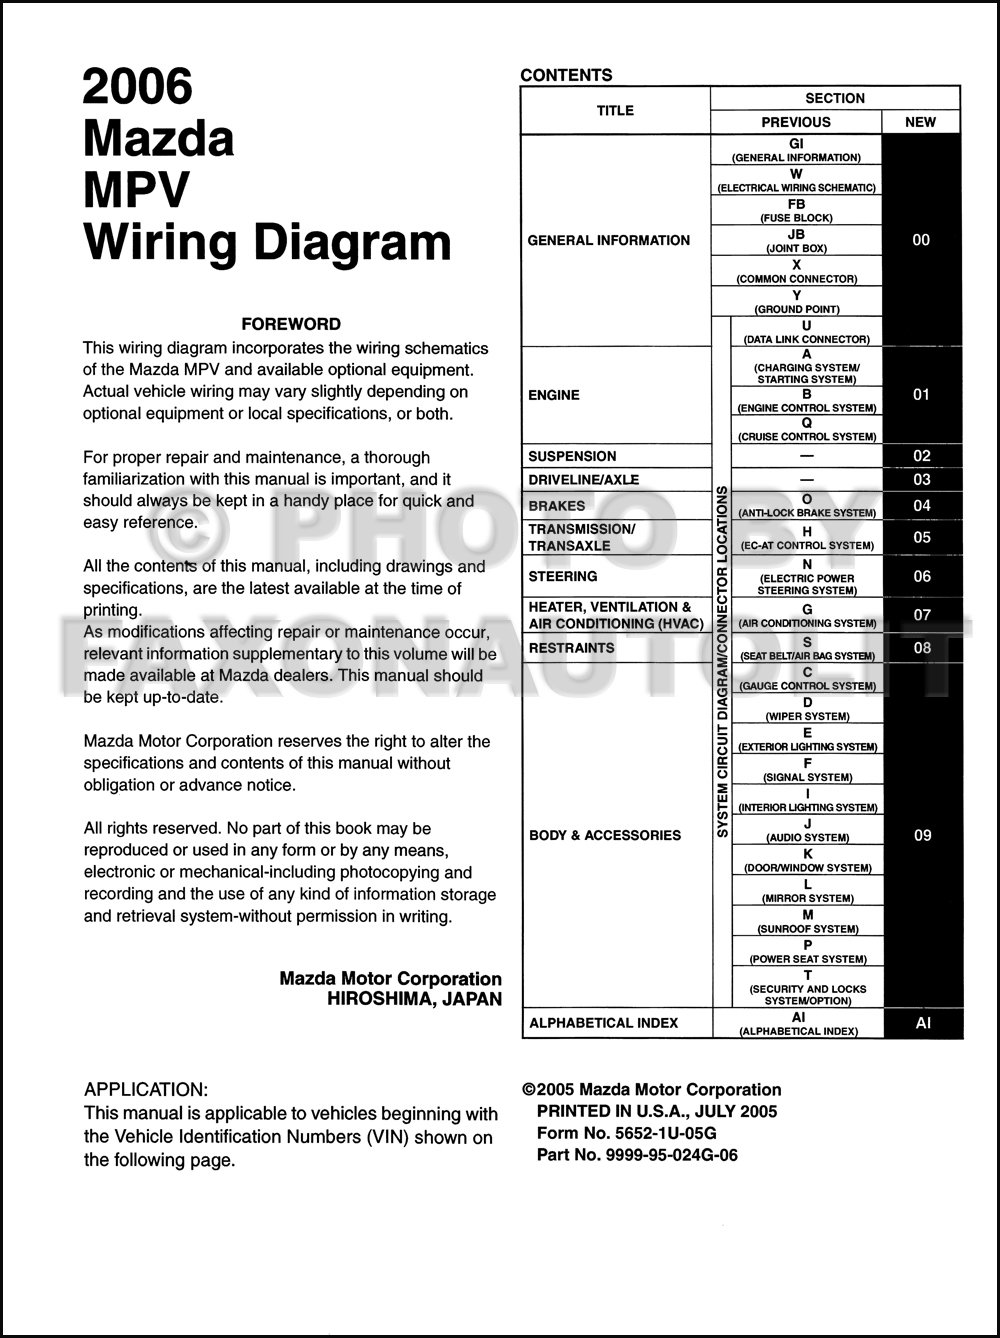 2004 mazda mpv wiring diagram data wiring diagrams 2006 mazda mpv wiring diagram manual original rh faxonautoliterature com 2004 mazda mpv radio wiring diagram cheapraybanclubmaster